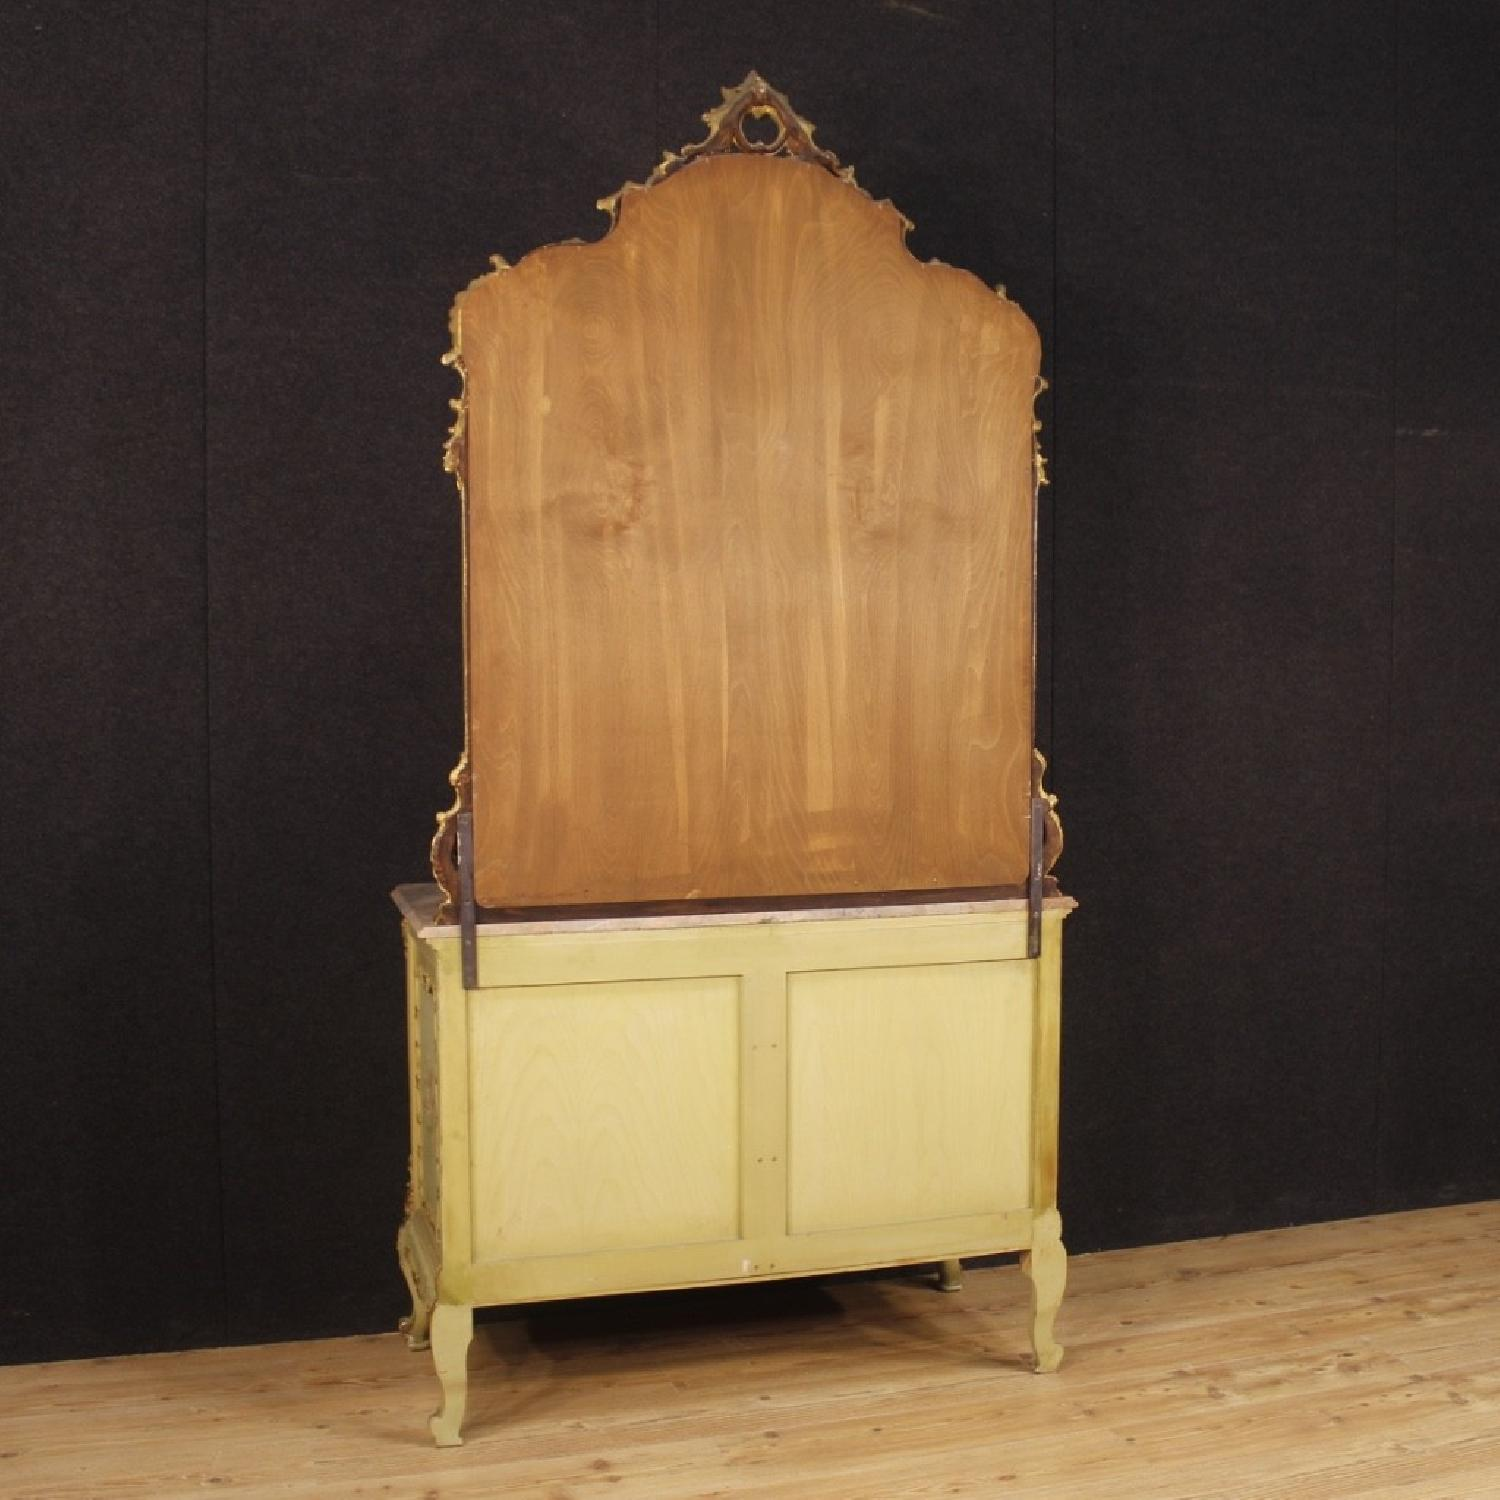 Venetian Dresser w/ Mirror in Lacquered Painted Wood